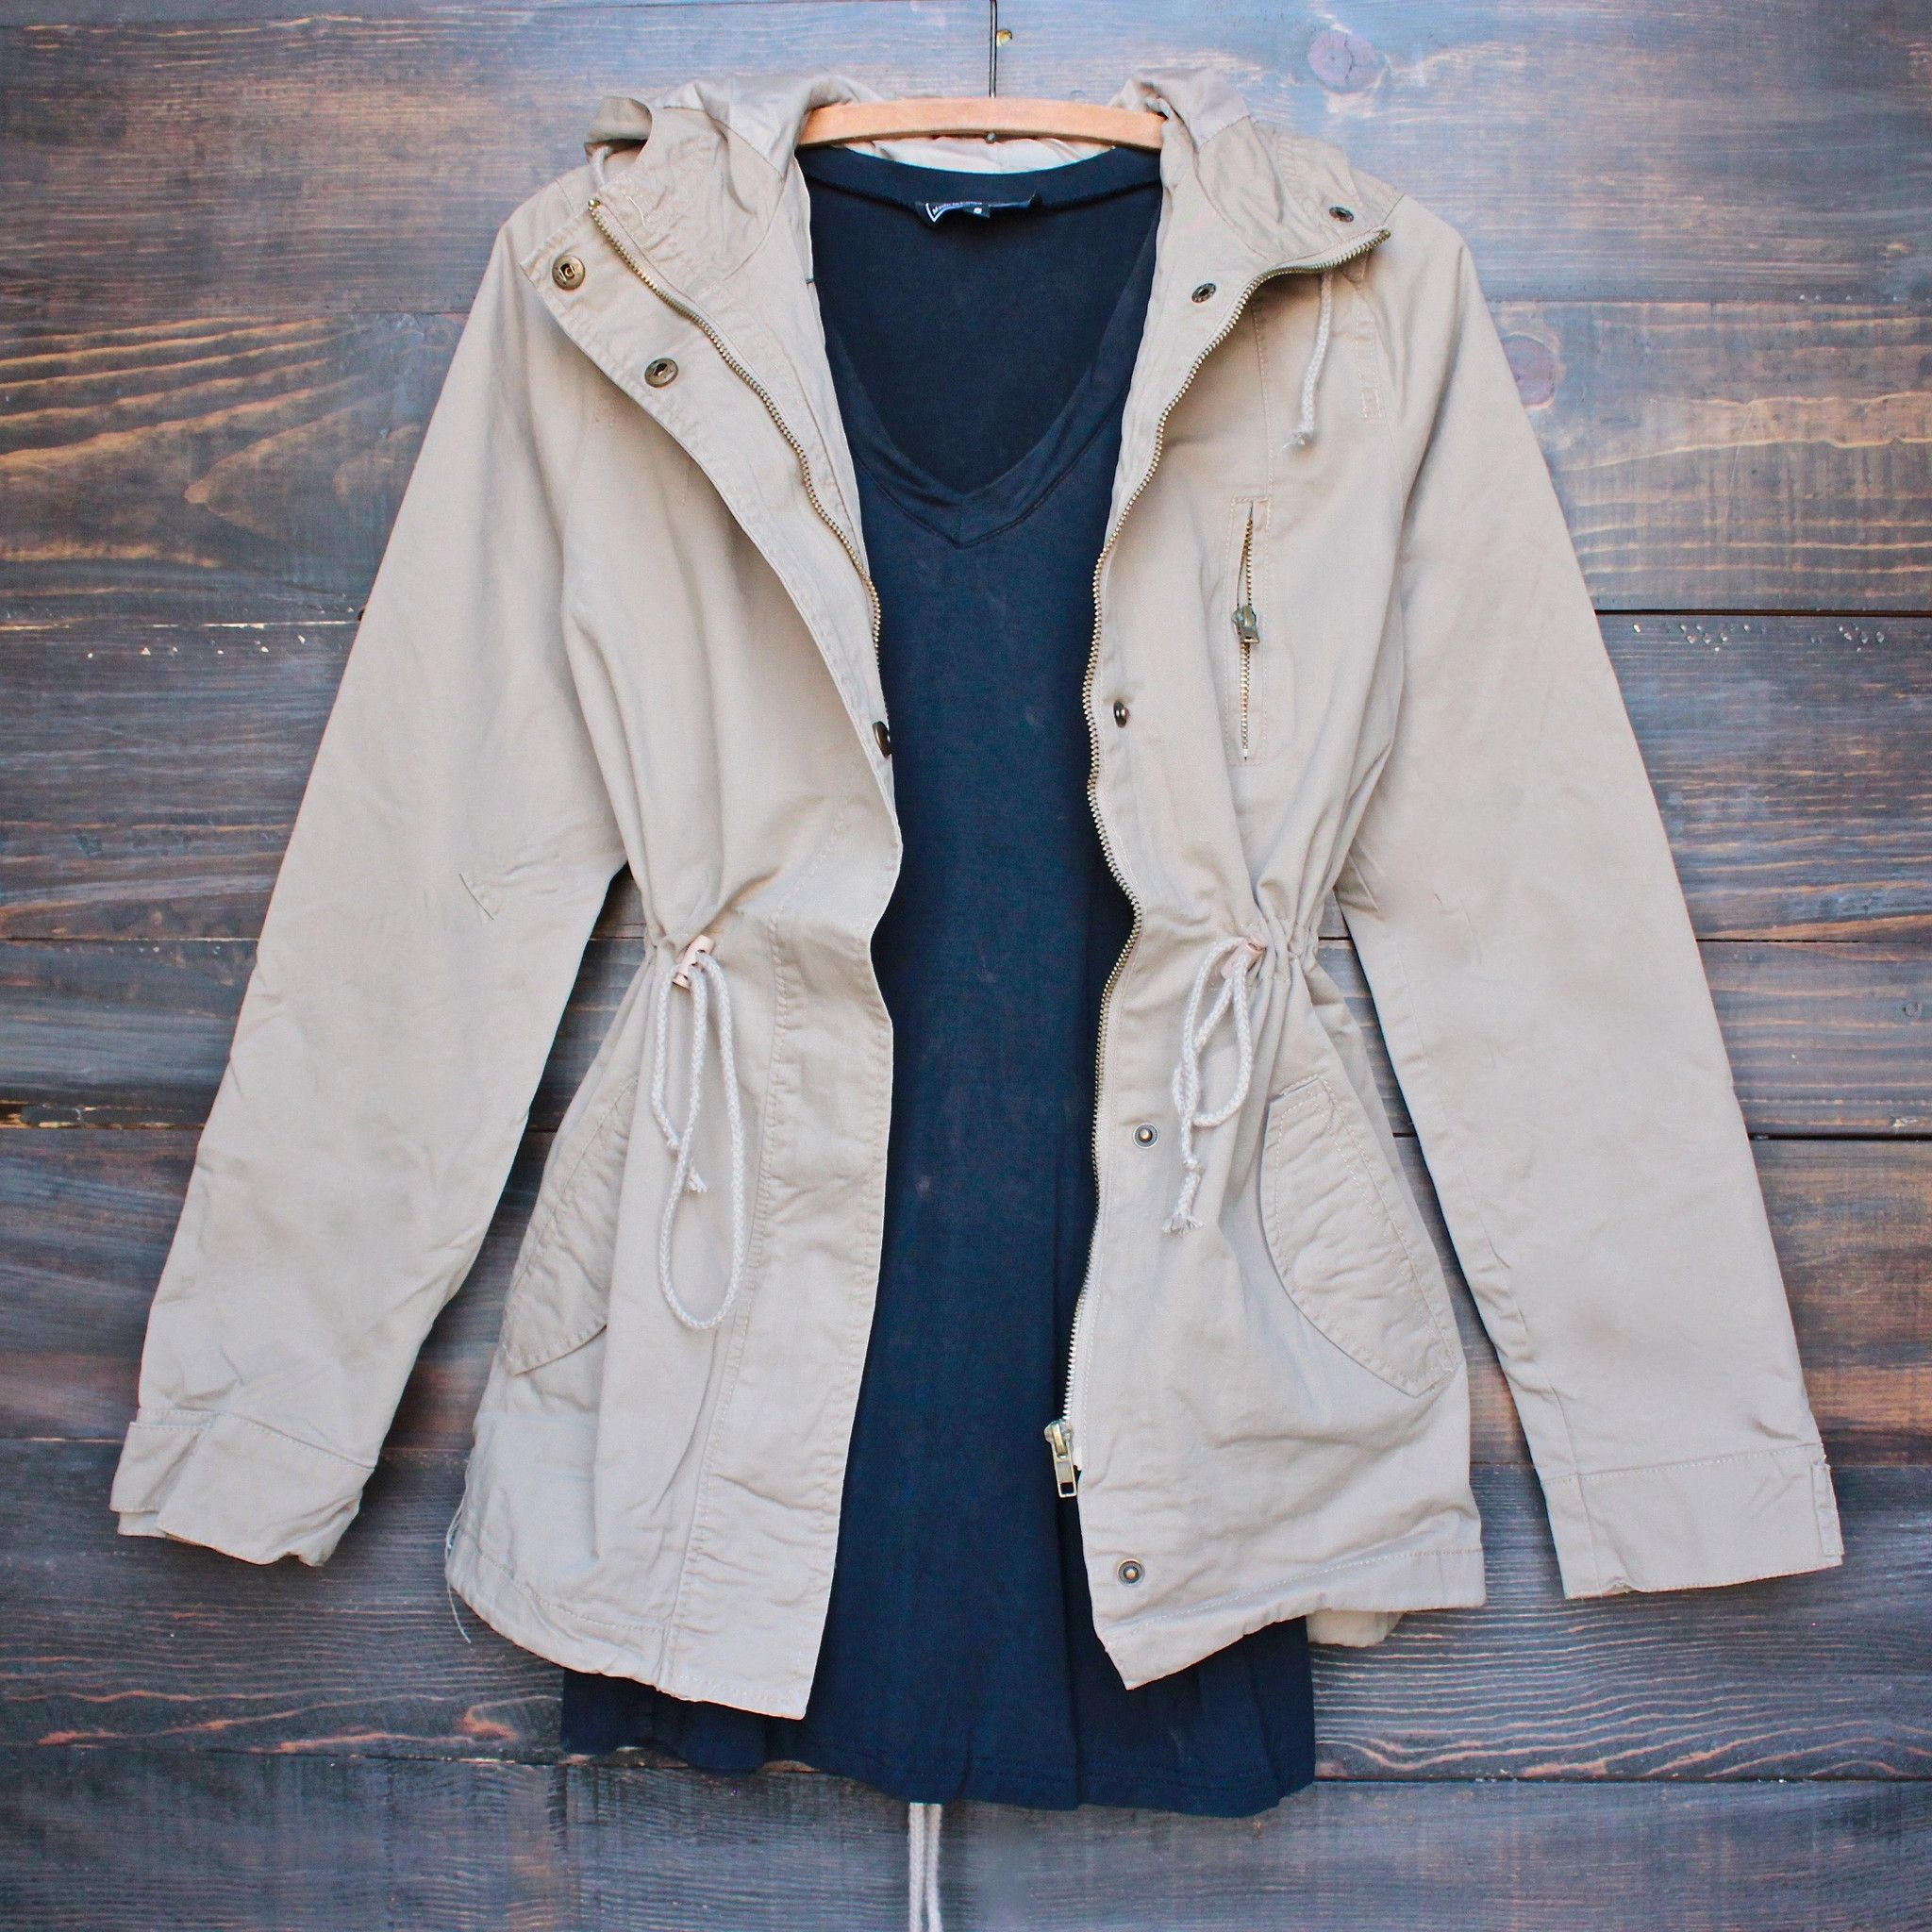 Utility parka jacket - olive green | Parka jackets, Parkas and ...